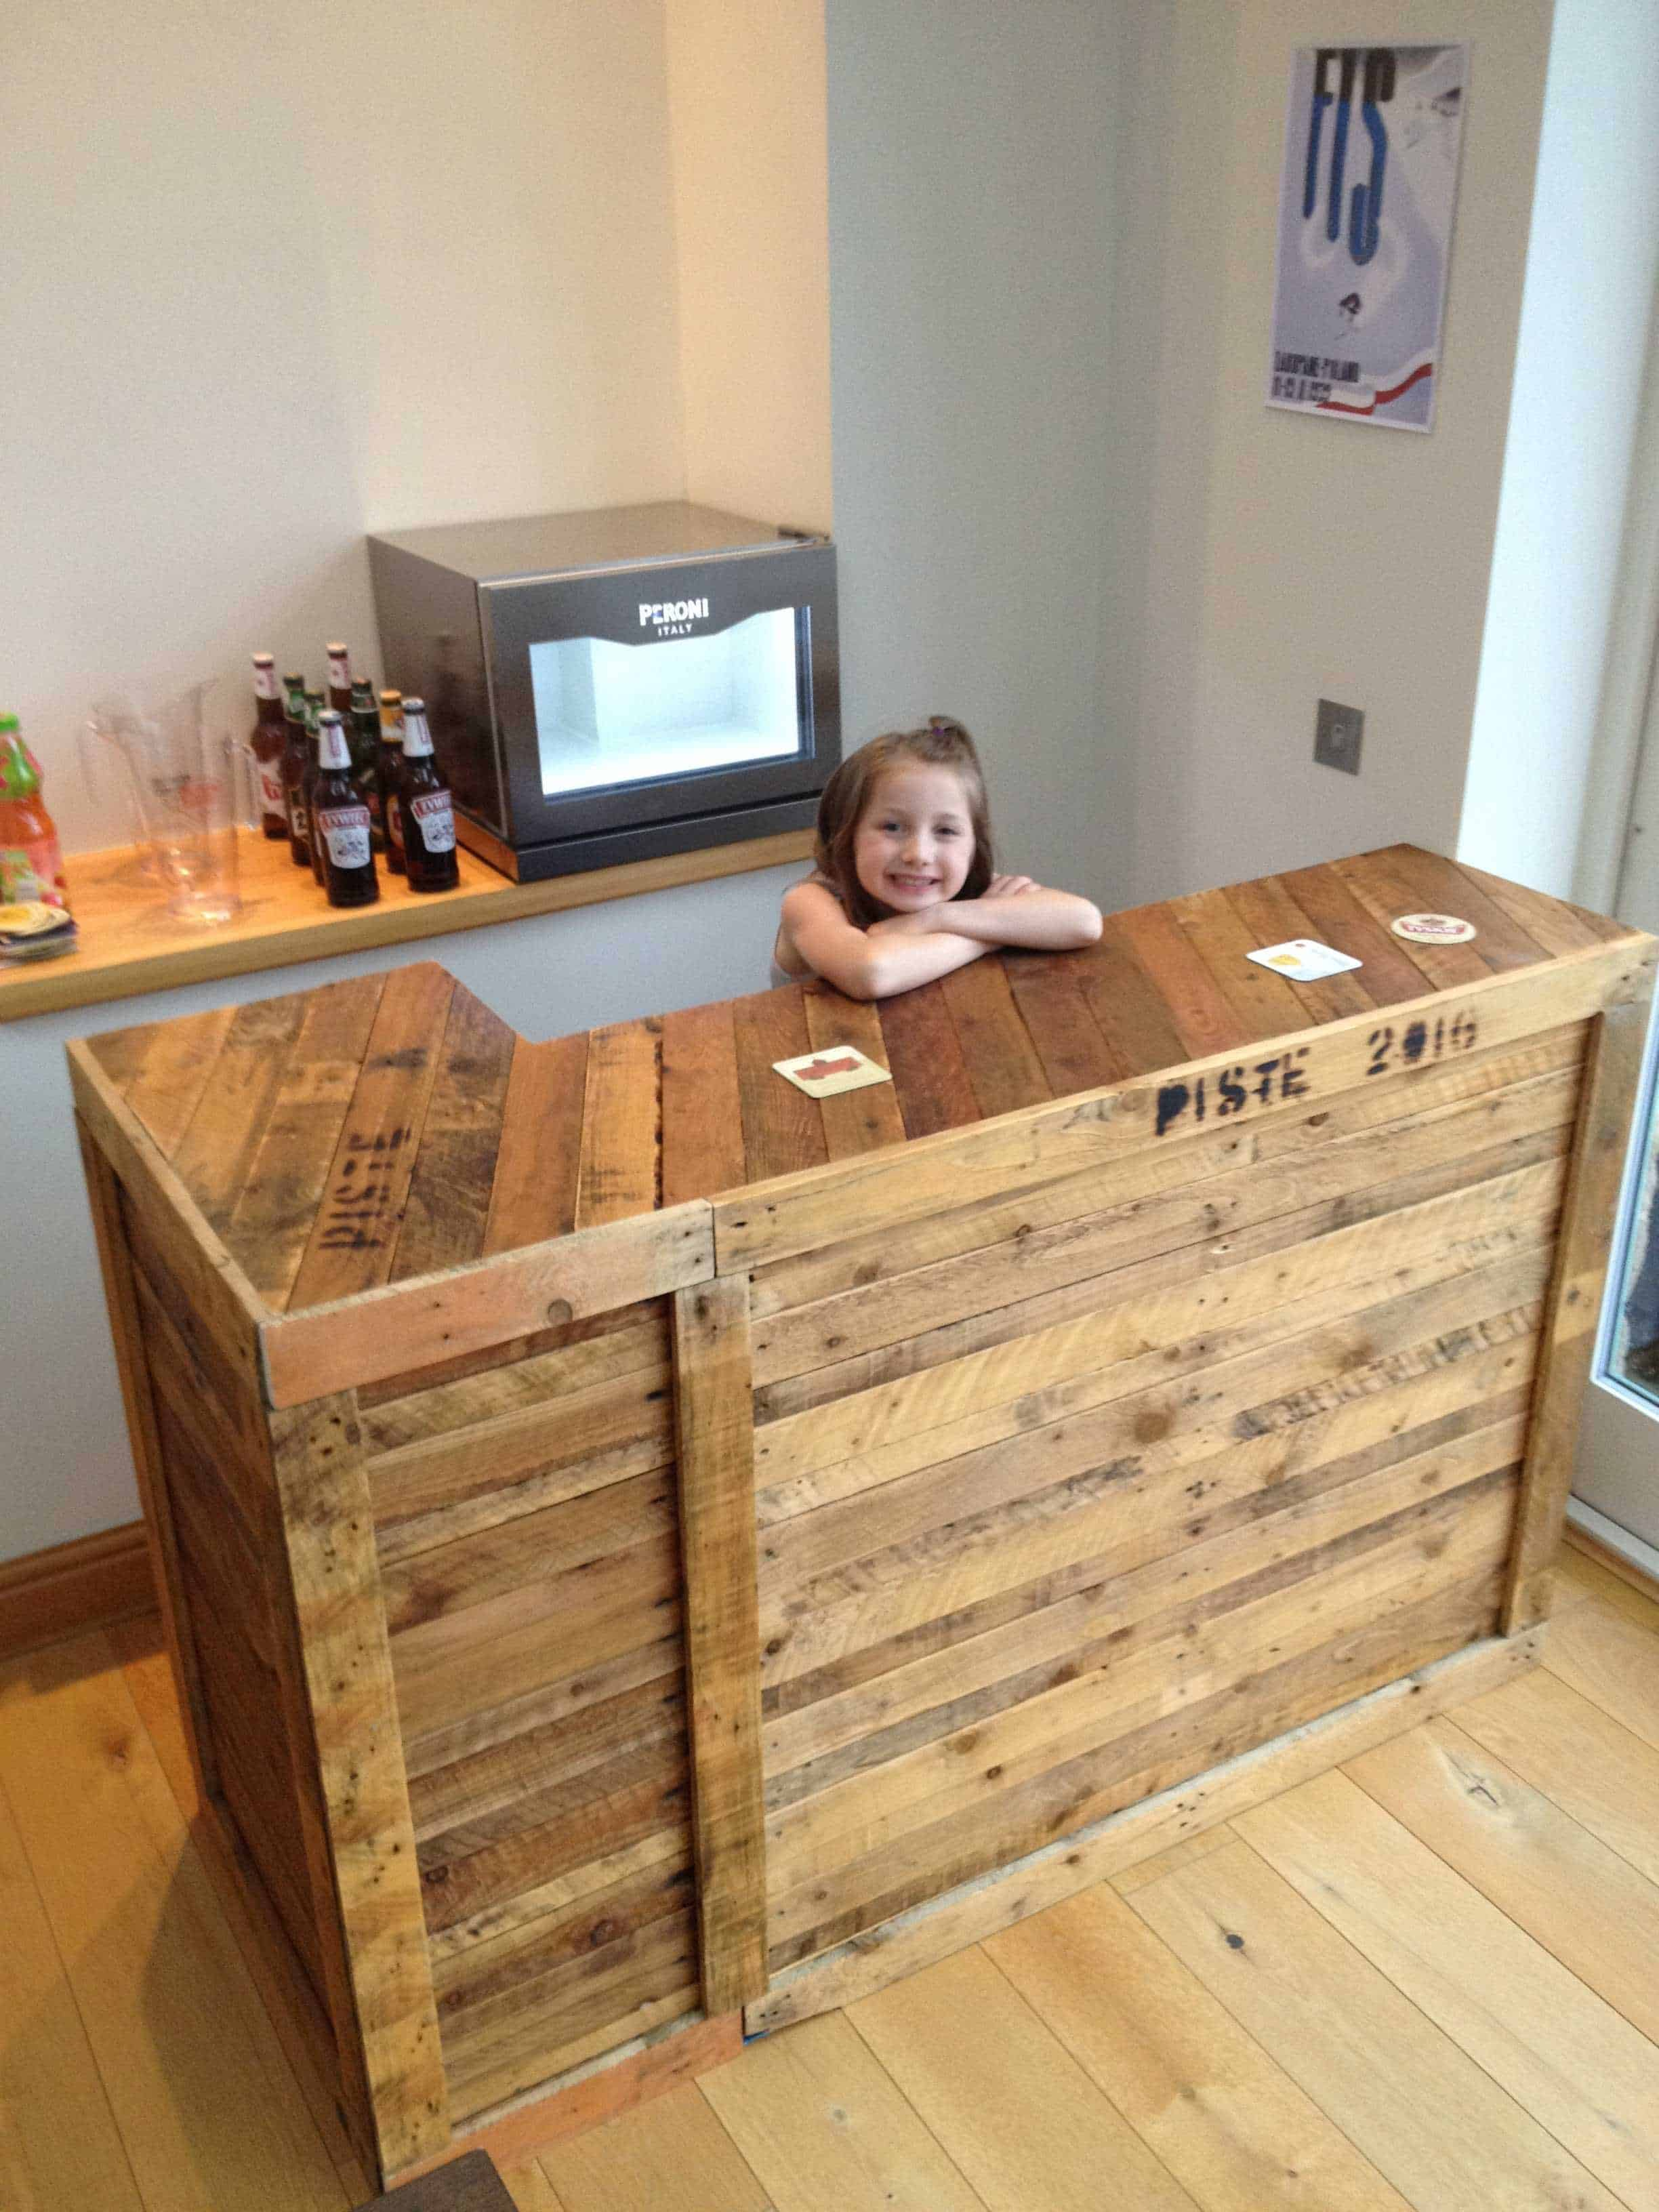 Diy: Pallet Bar Idea • 1001 Pallets